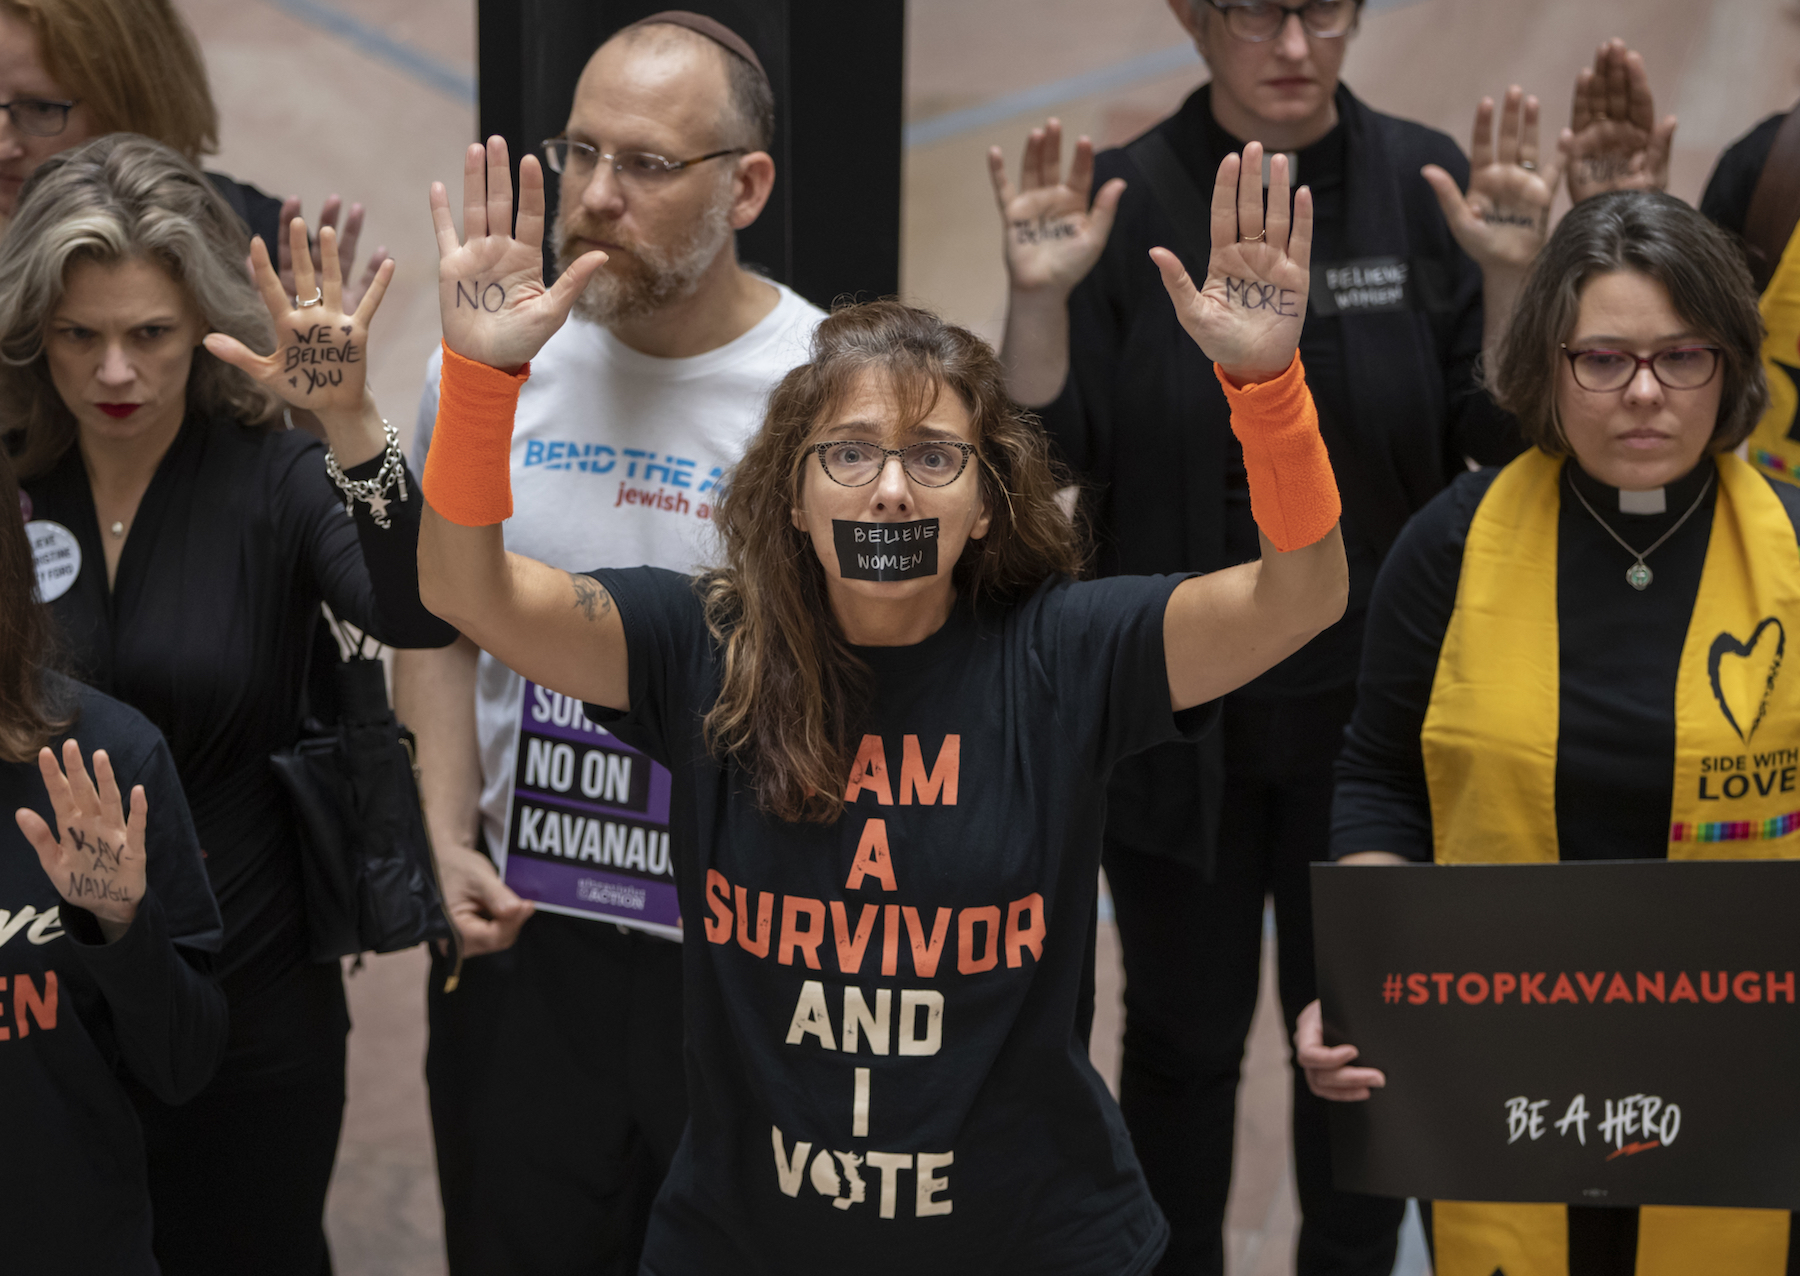 "<div class=""meta image-caption""><div class=""origin-logo origin-image ap""><span>AP</span></div><span class=""caption-text"">Womens' rights activists demonstrate in the Hart Senate Office Building as the Senate Judiciary Committee hears from Supreme Court nominee Brett Kavanaugh and Christine Blasey Ford (AP Photo/J. Scott Applewhite)</span></div>"